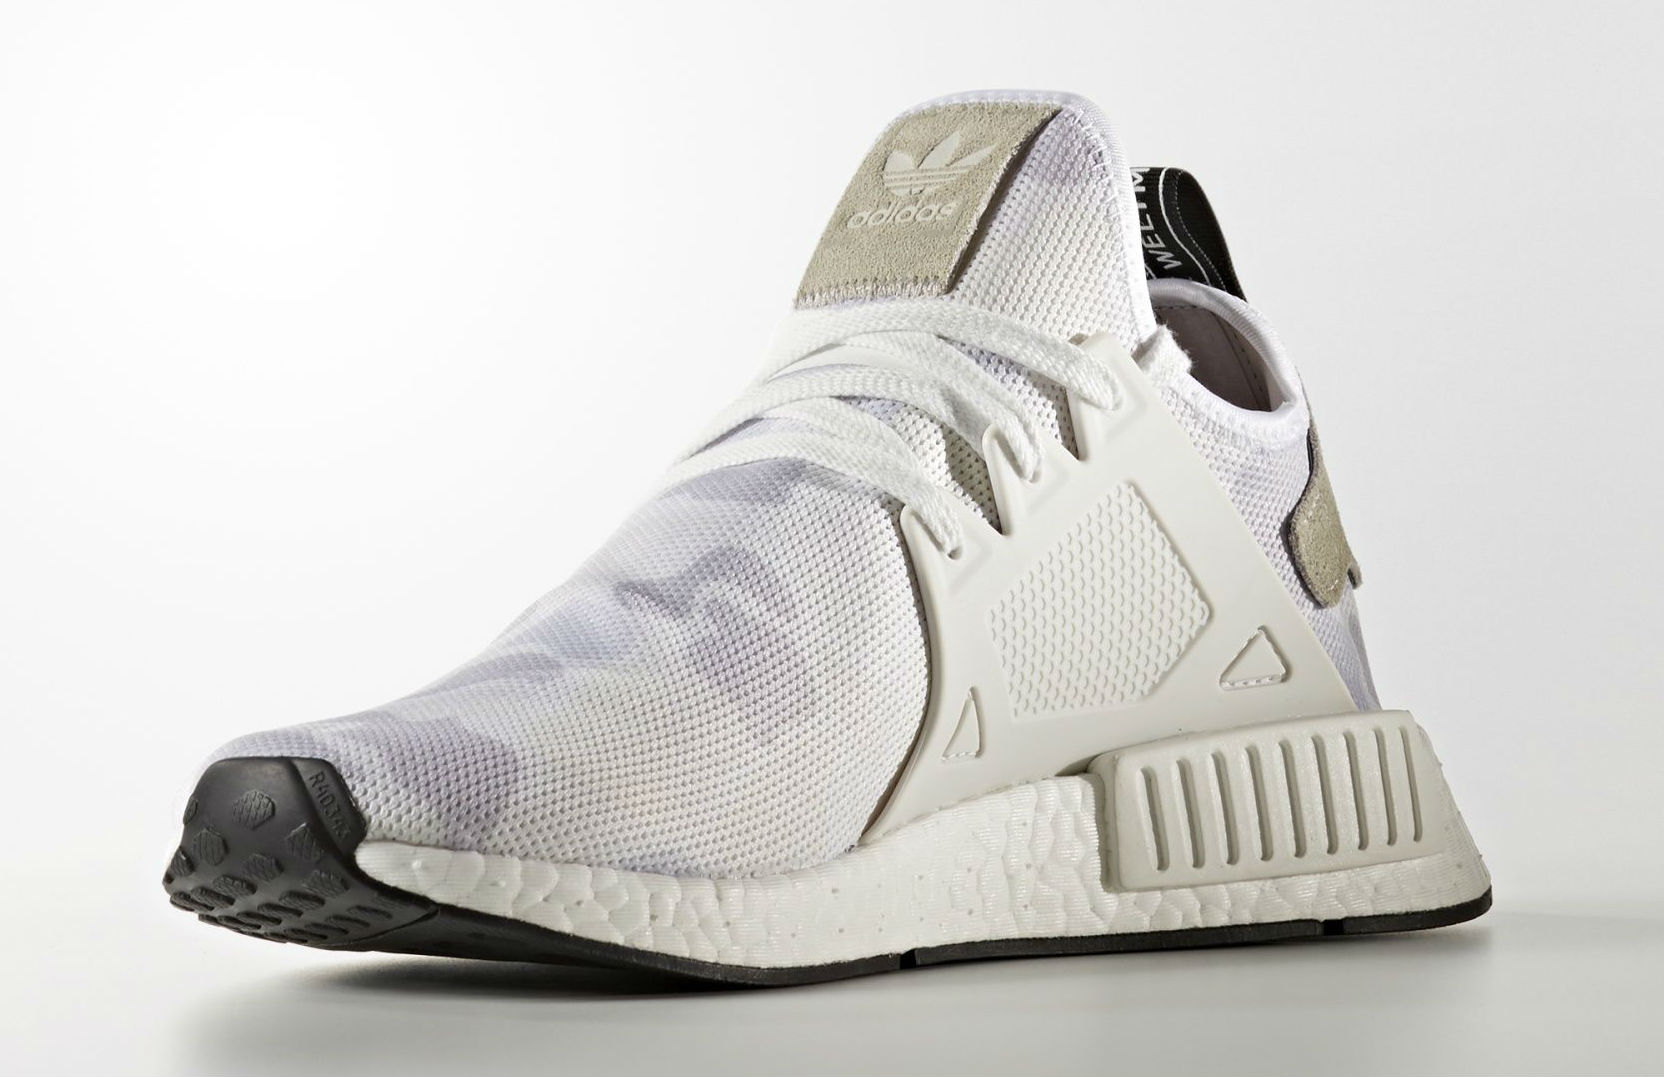 Adidas NMD XR1 OG PK BY1909 US Size 10 Cheap NMD Shoes